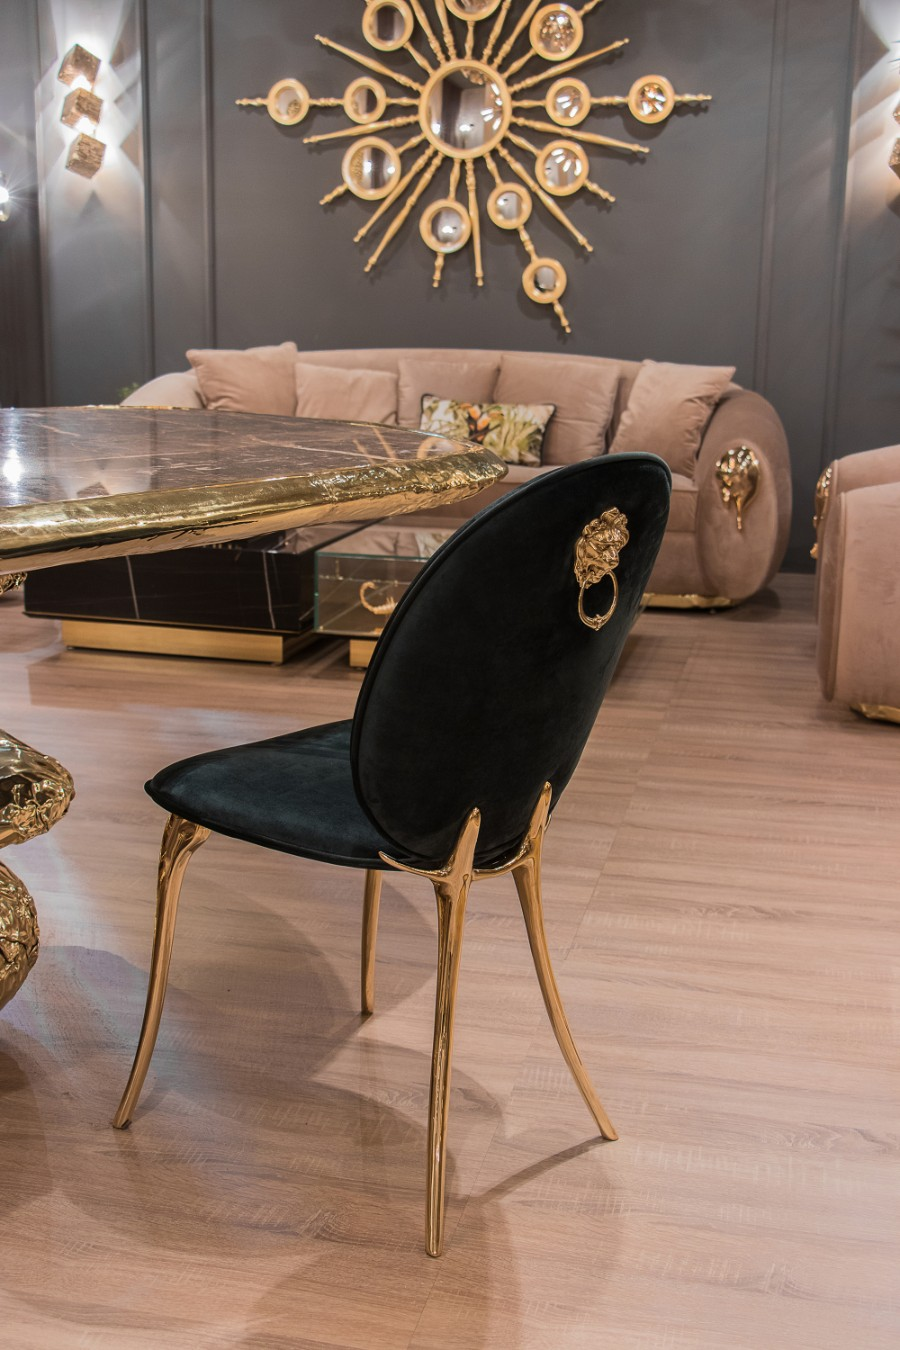 chair Born in A Glamorous Celebration: Boca do Lobo Reveals Soleil Chair bl isaloni 26 HR